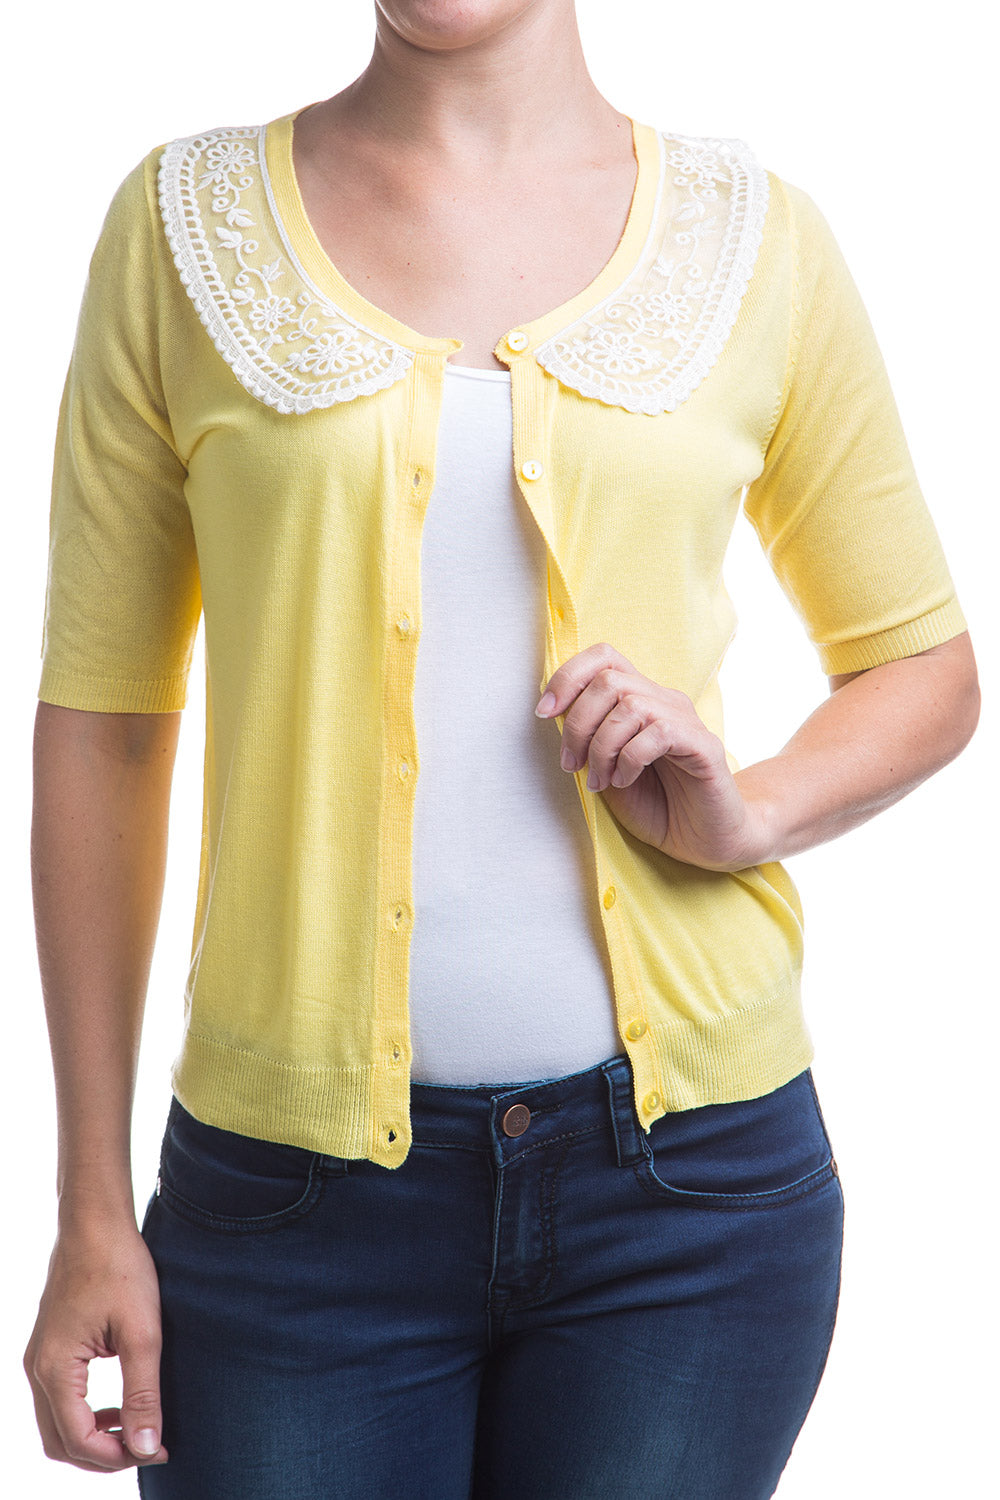 Type 1 Lemon Meringue Pie Cardigan